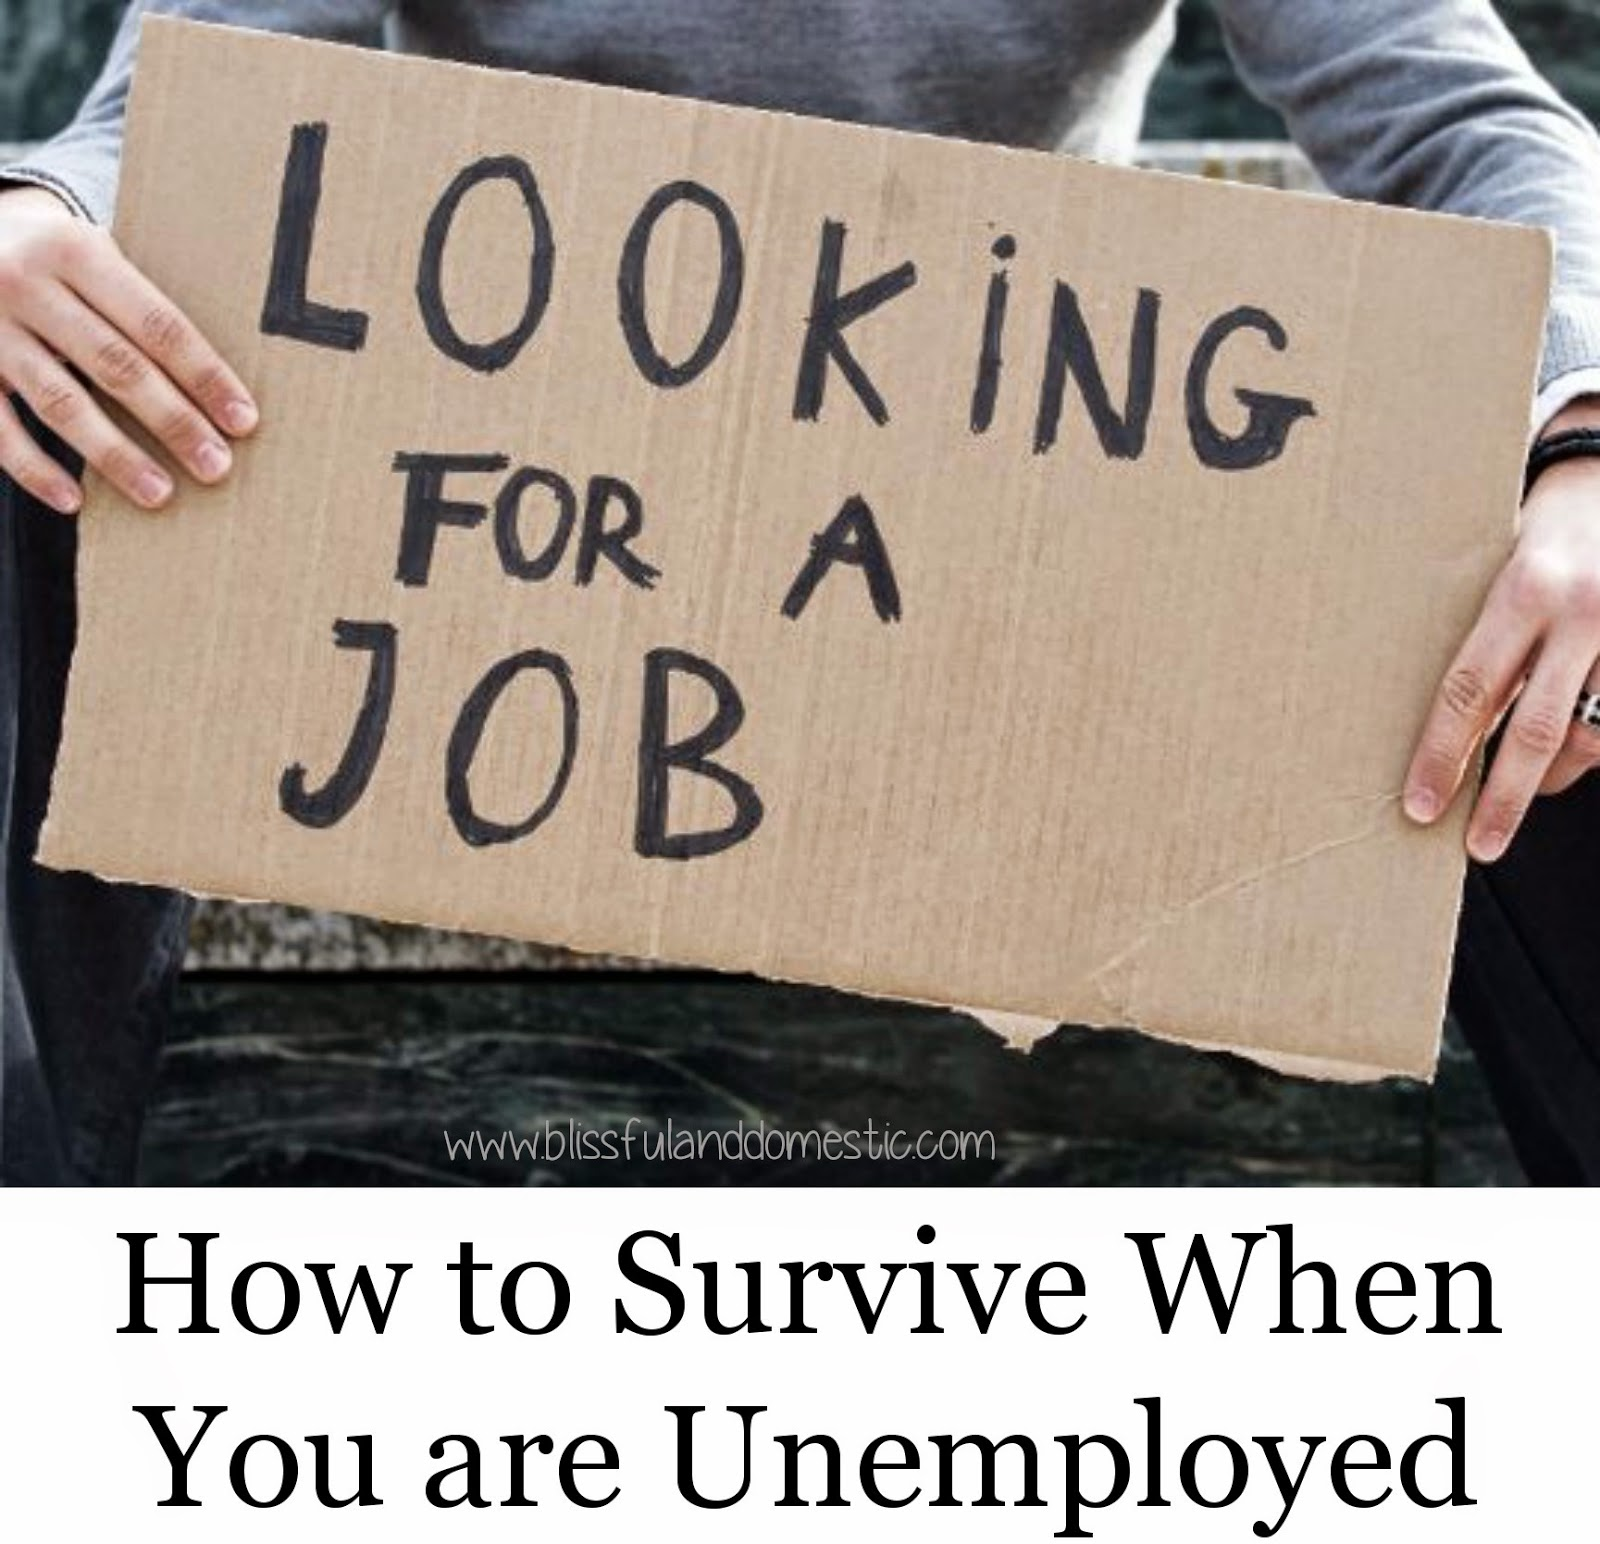 How to Survive When You are Unemployed...